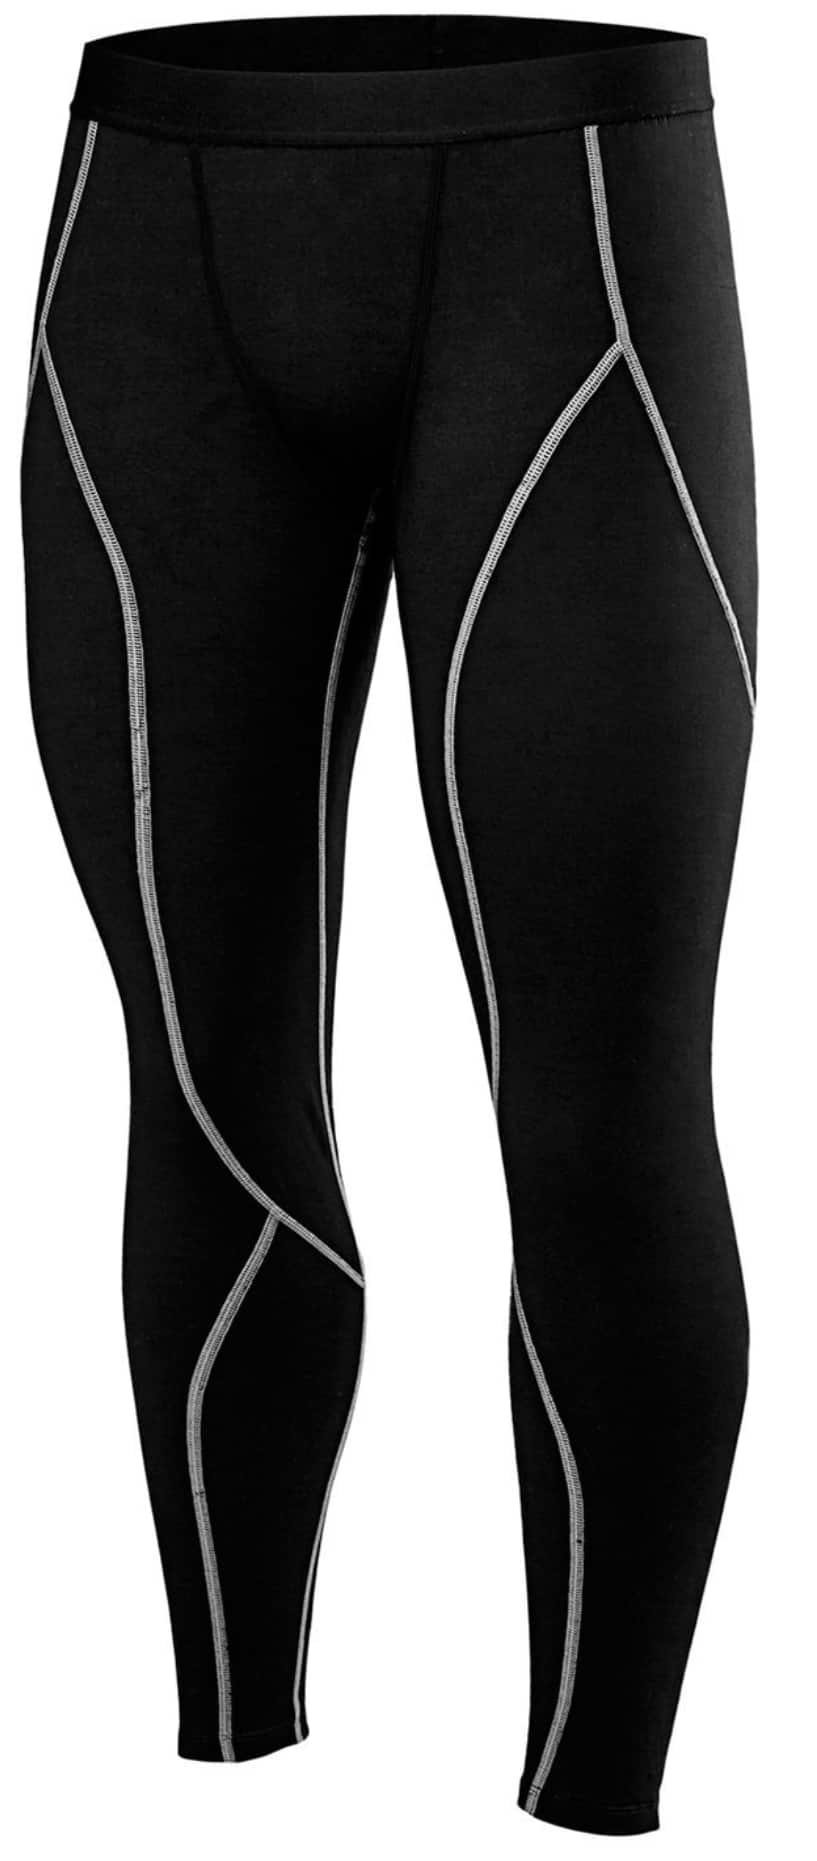 Men's Ultra Soft Fleece Comperssion Performance Long Johns Top Bottom Thermal Underwear Baselayer $13.29 AC FS w/Amazon Prime